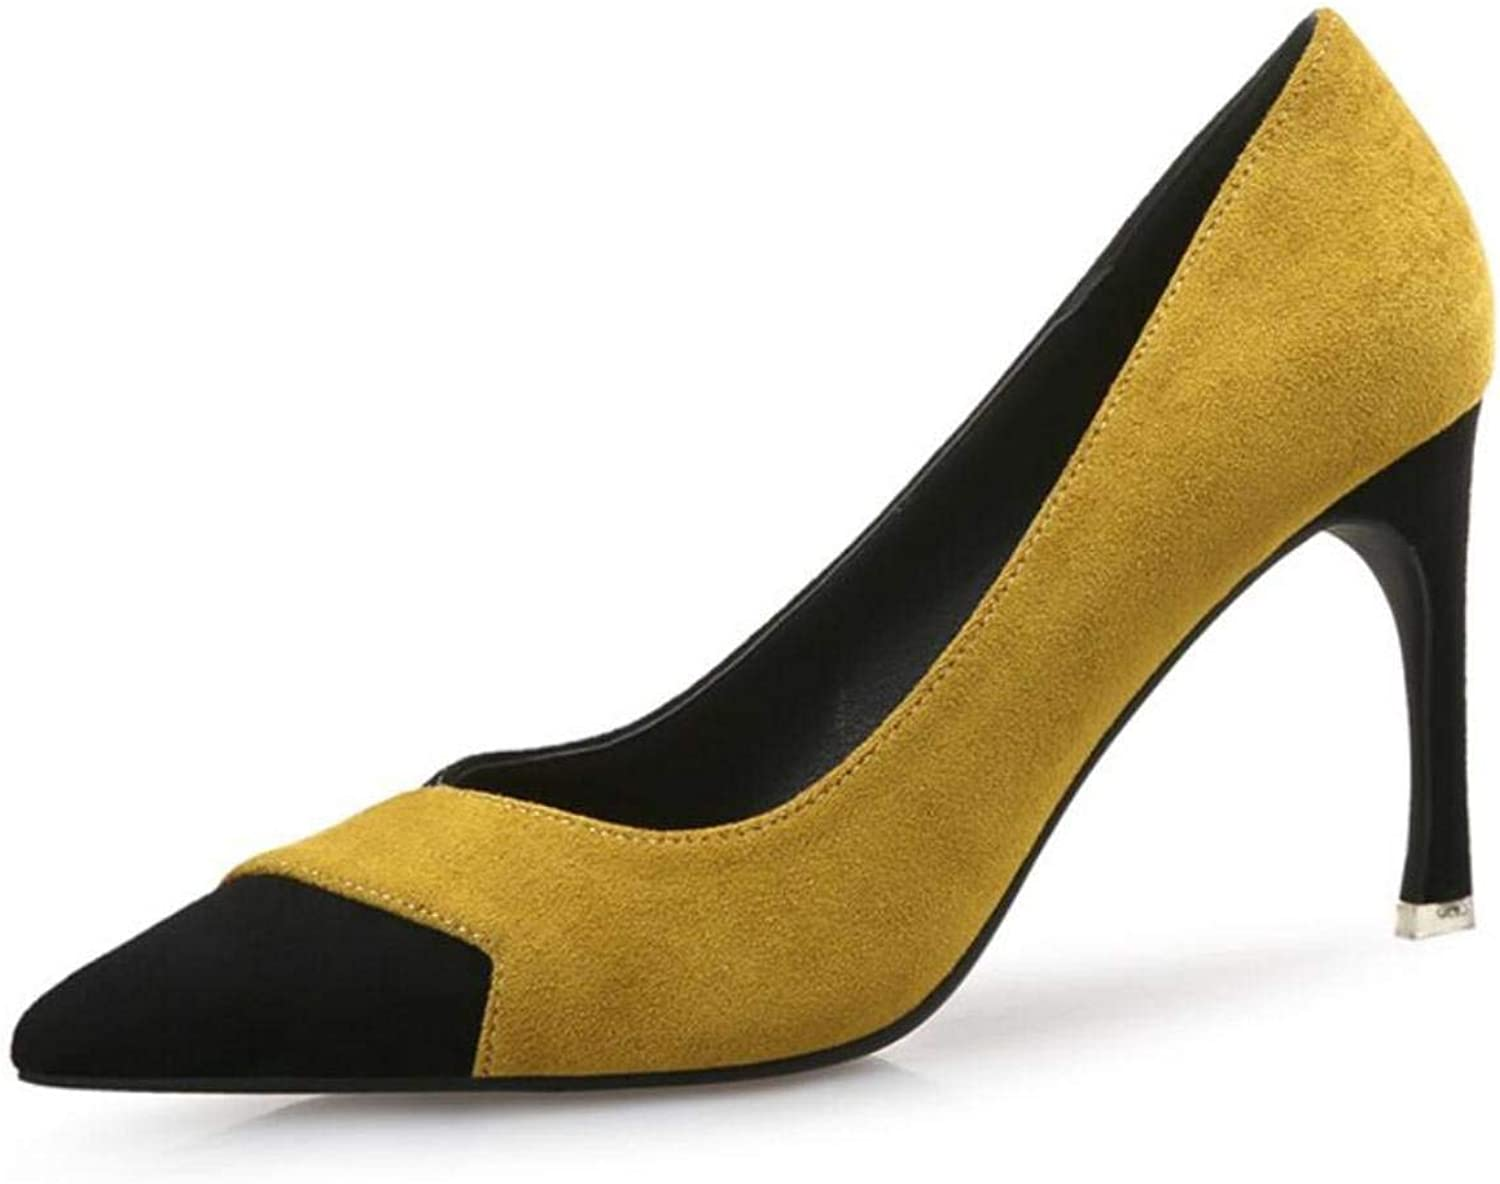 Lady shoes Women High Heels Tip Fine with Suede Fight Single Heel Leisure Cosy Wild Casual Quality Super Elegant for Womens High 8cm